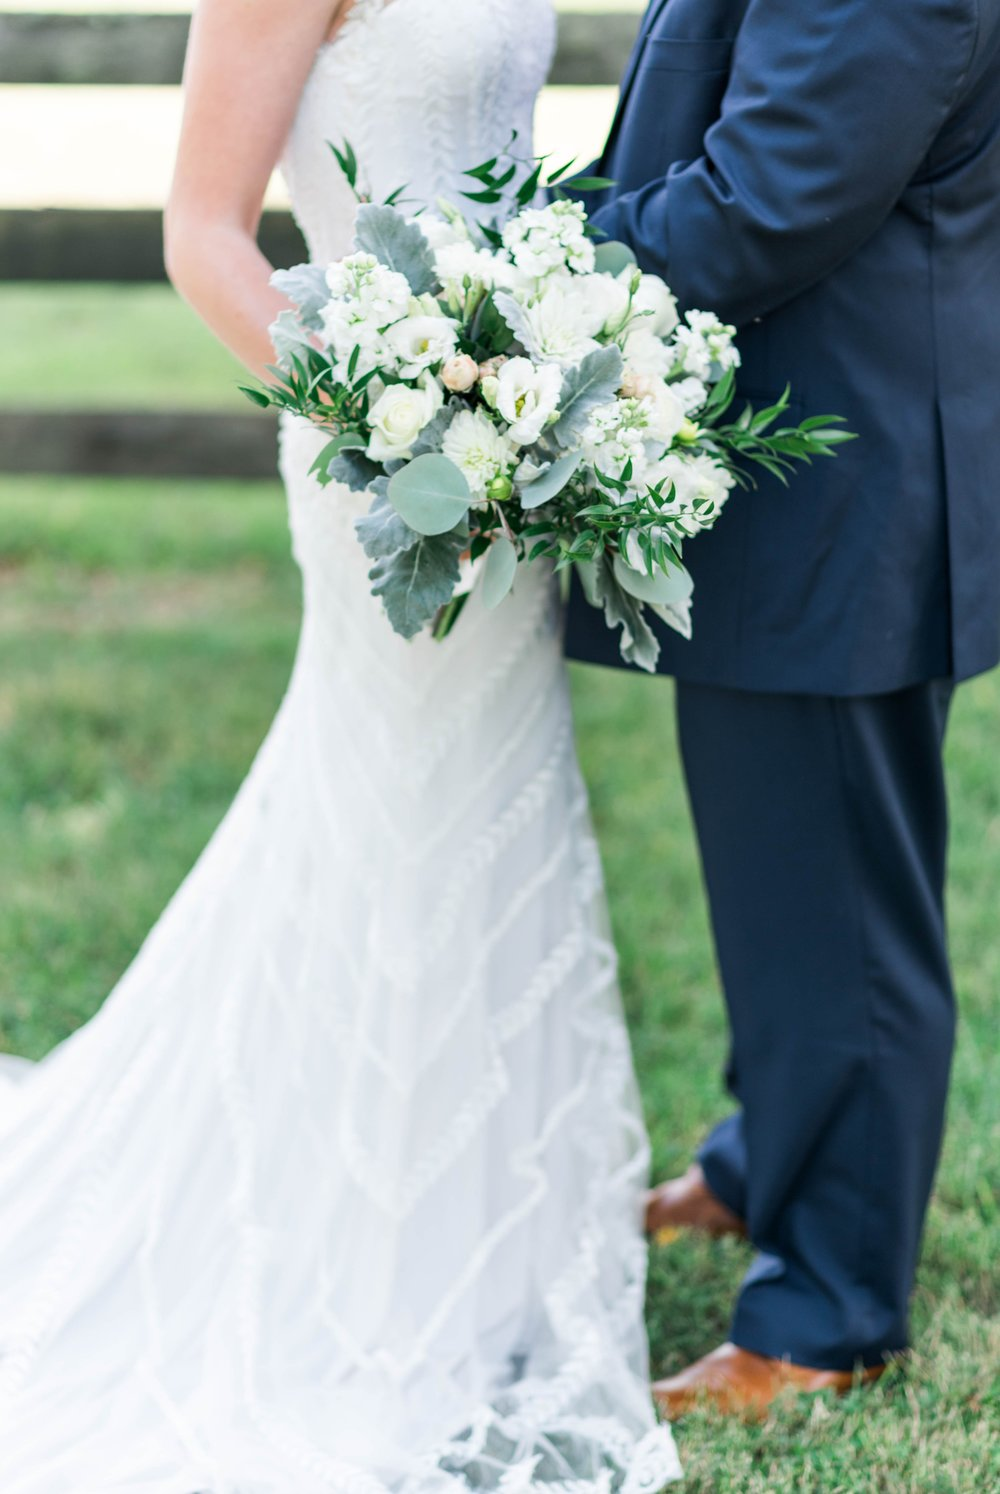 SorellaFarms_VirginiaWeddingPhotographer_BarnWedding_Lynchburgweddingphotographer_DanielleTyler 37.jpg